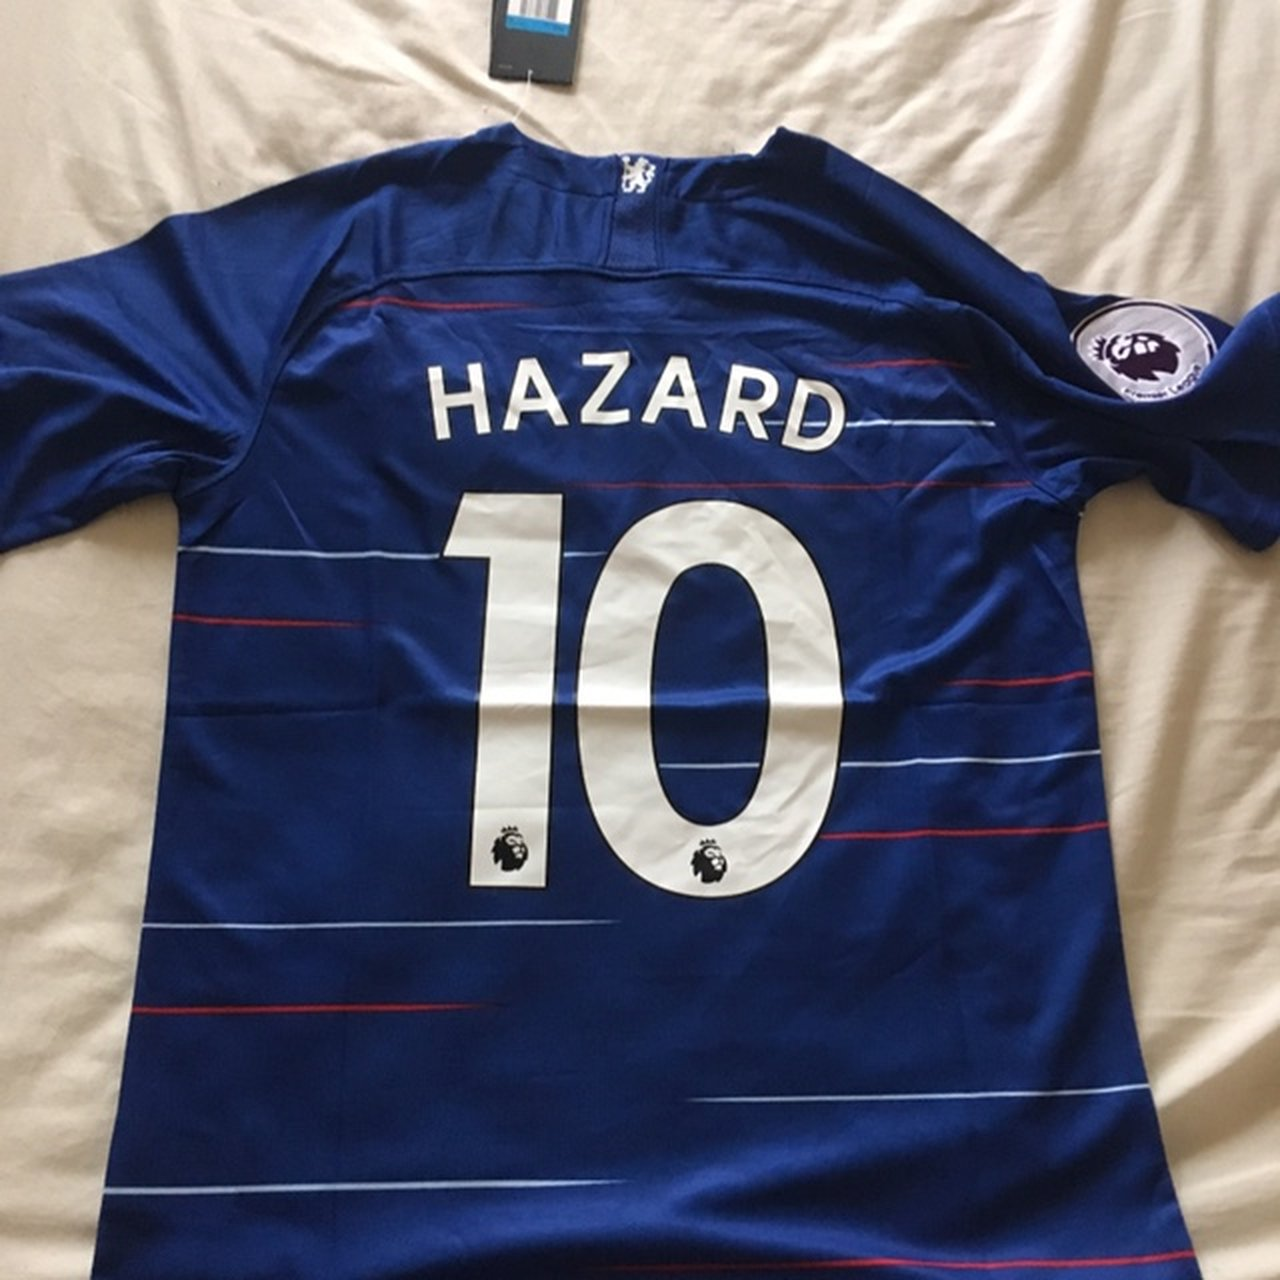 Chelsea hazard Shirt Sized Medium Brand new with tags - Depop 7bc1f9040